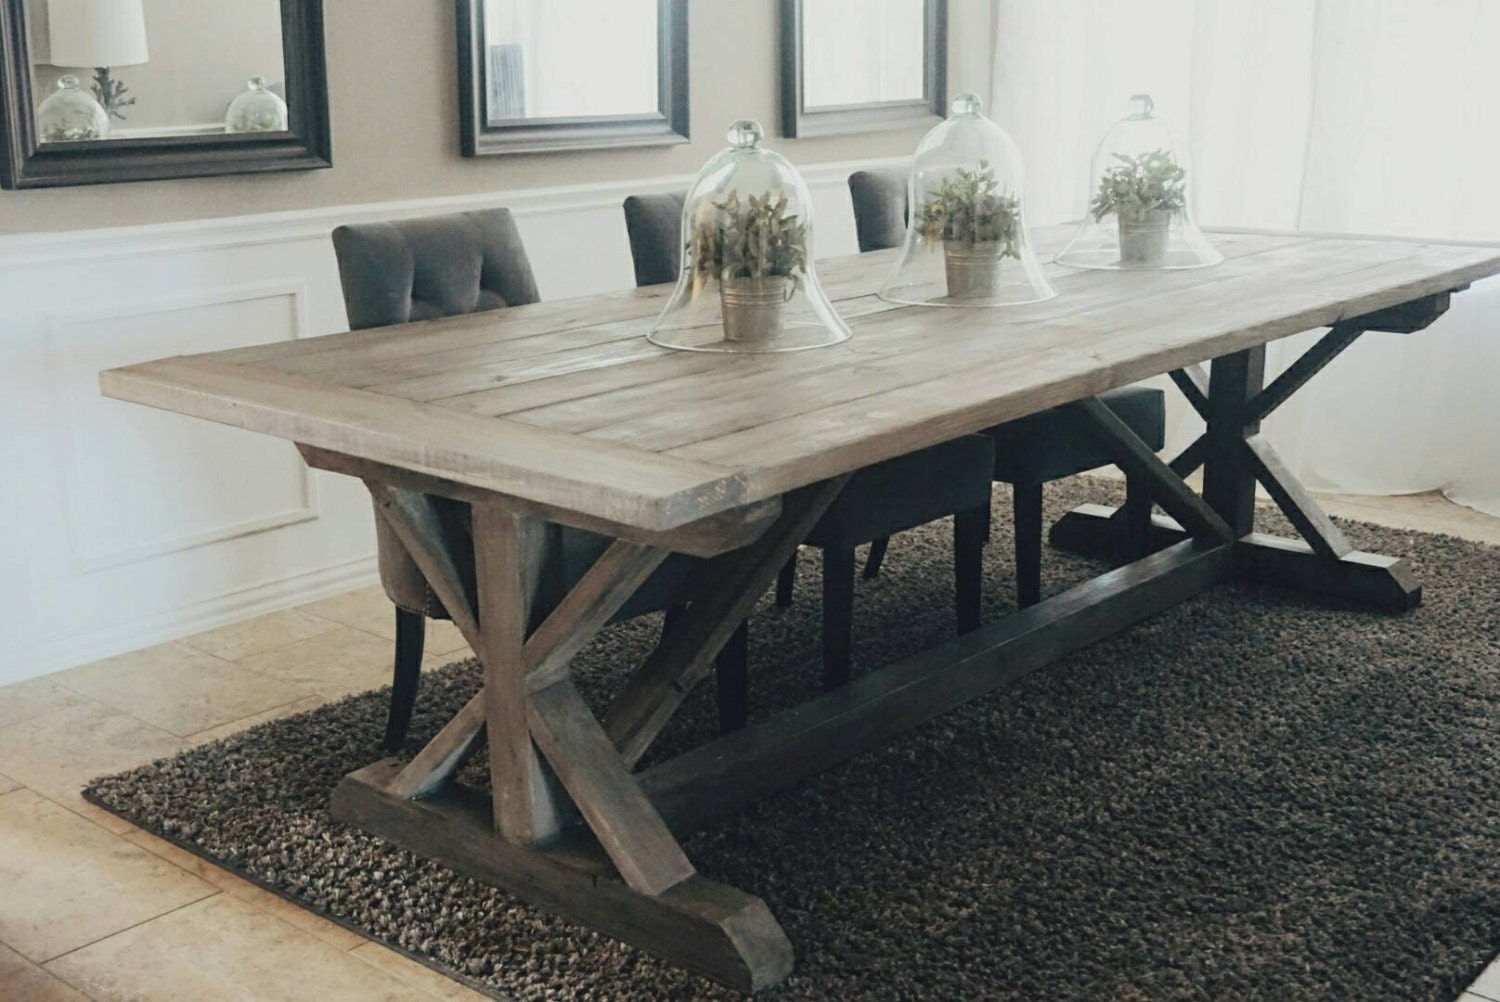 made to order x style farmhouse trestle table rh etsy com farm style kitchen table plans sketchup farm style kitchen table and chairs